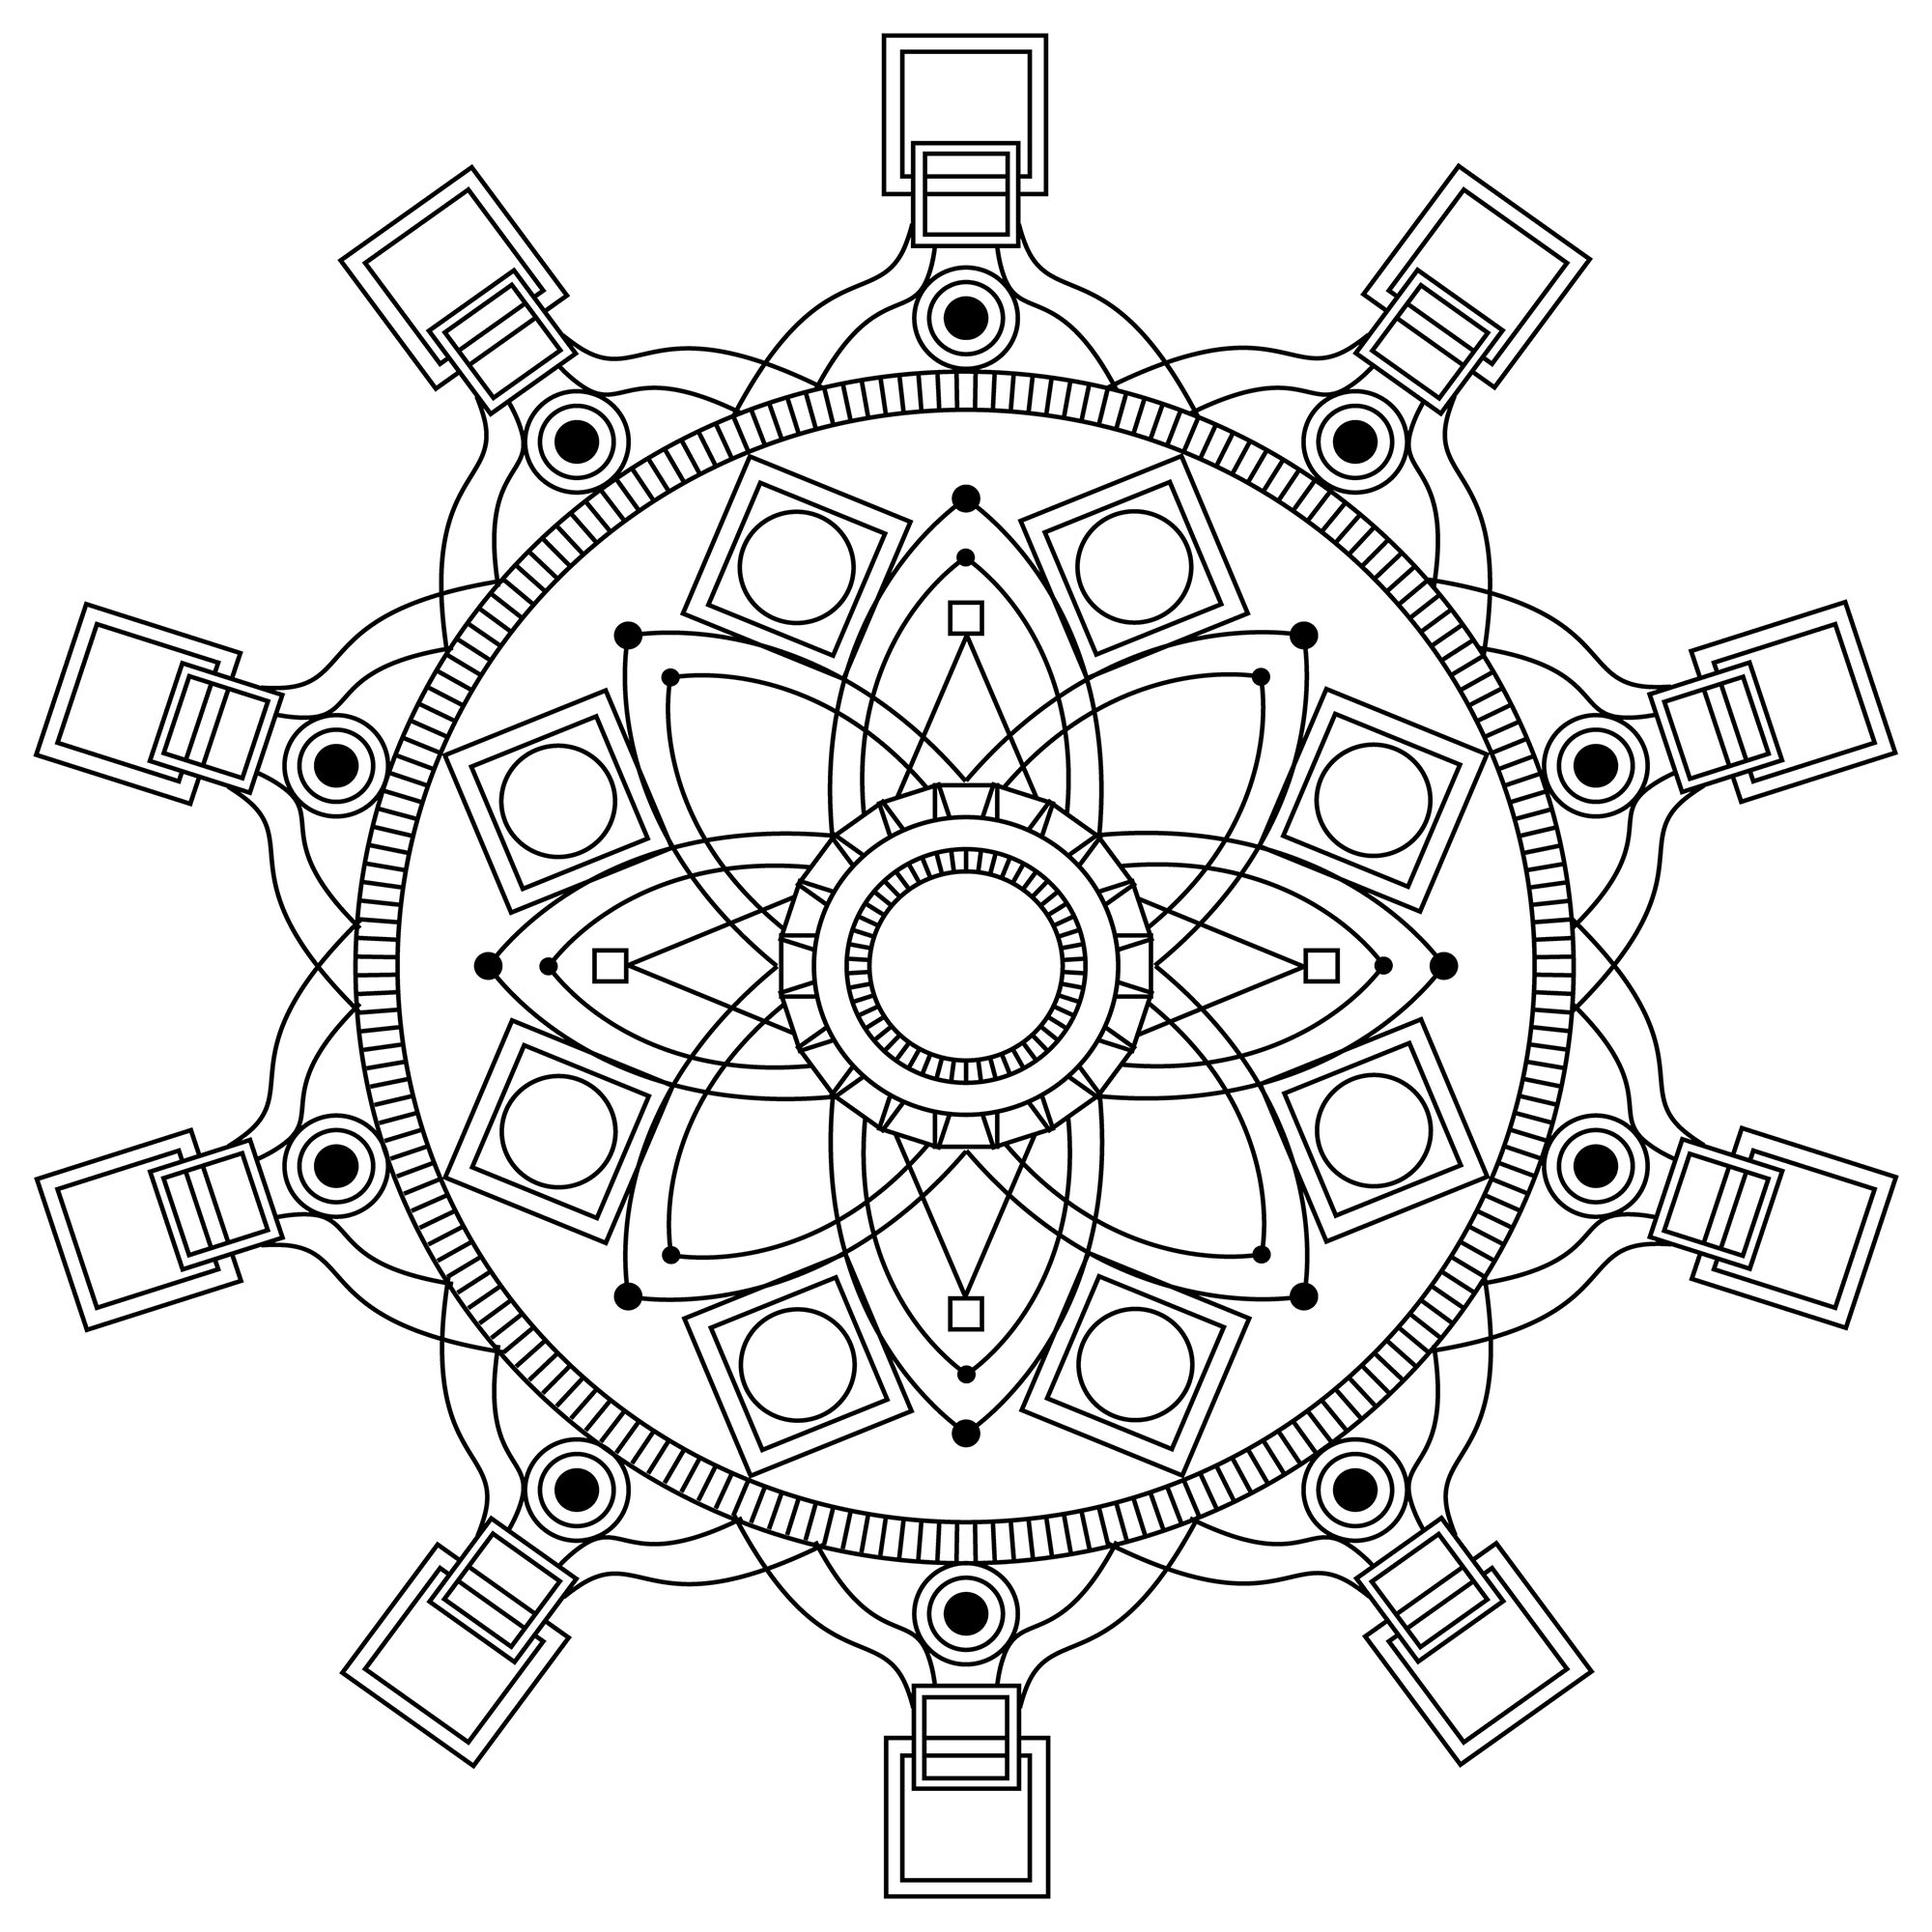 Mandala with squares at its extremities